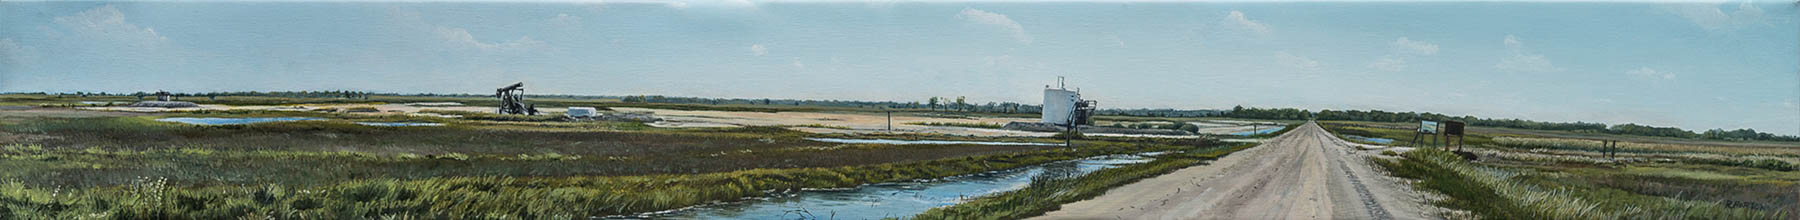 "Quivira Wildlife Refuge, Northeast 170th Street by Russell Horton, Oil on canvas, 7 3⁄4""x54 1⁄4"", $3000"